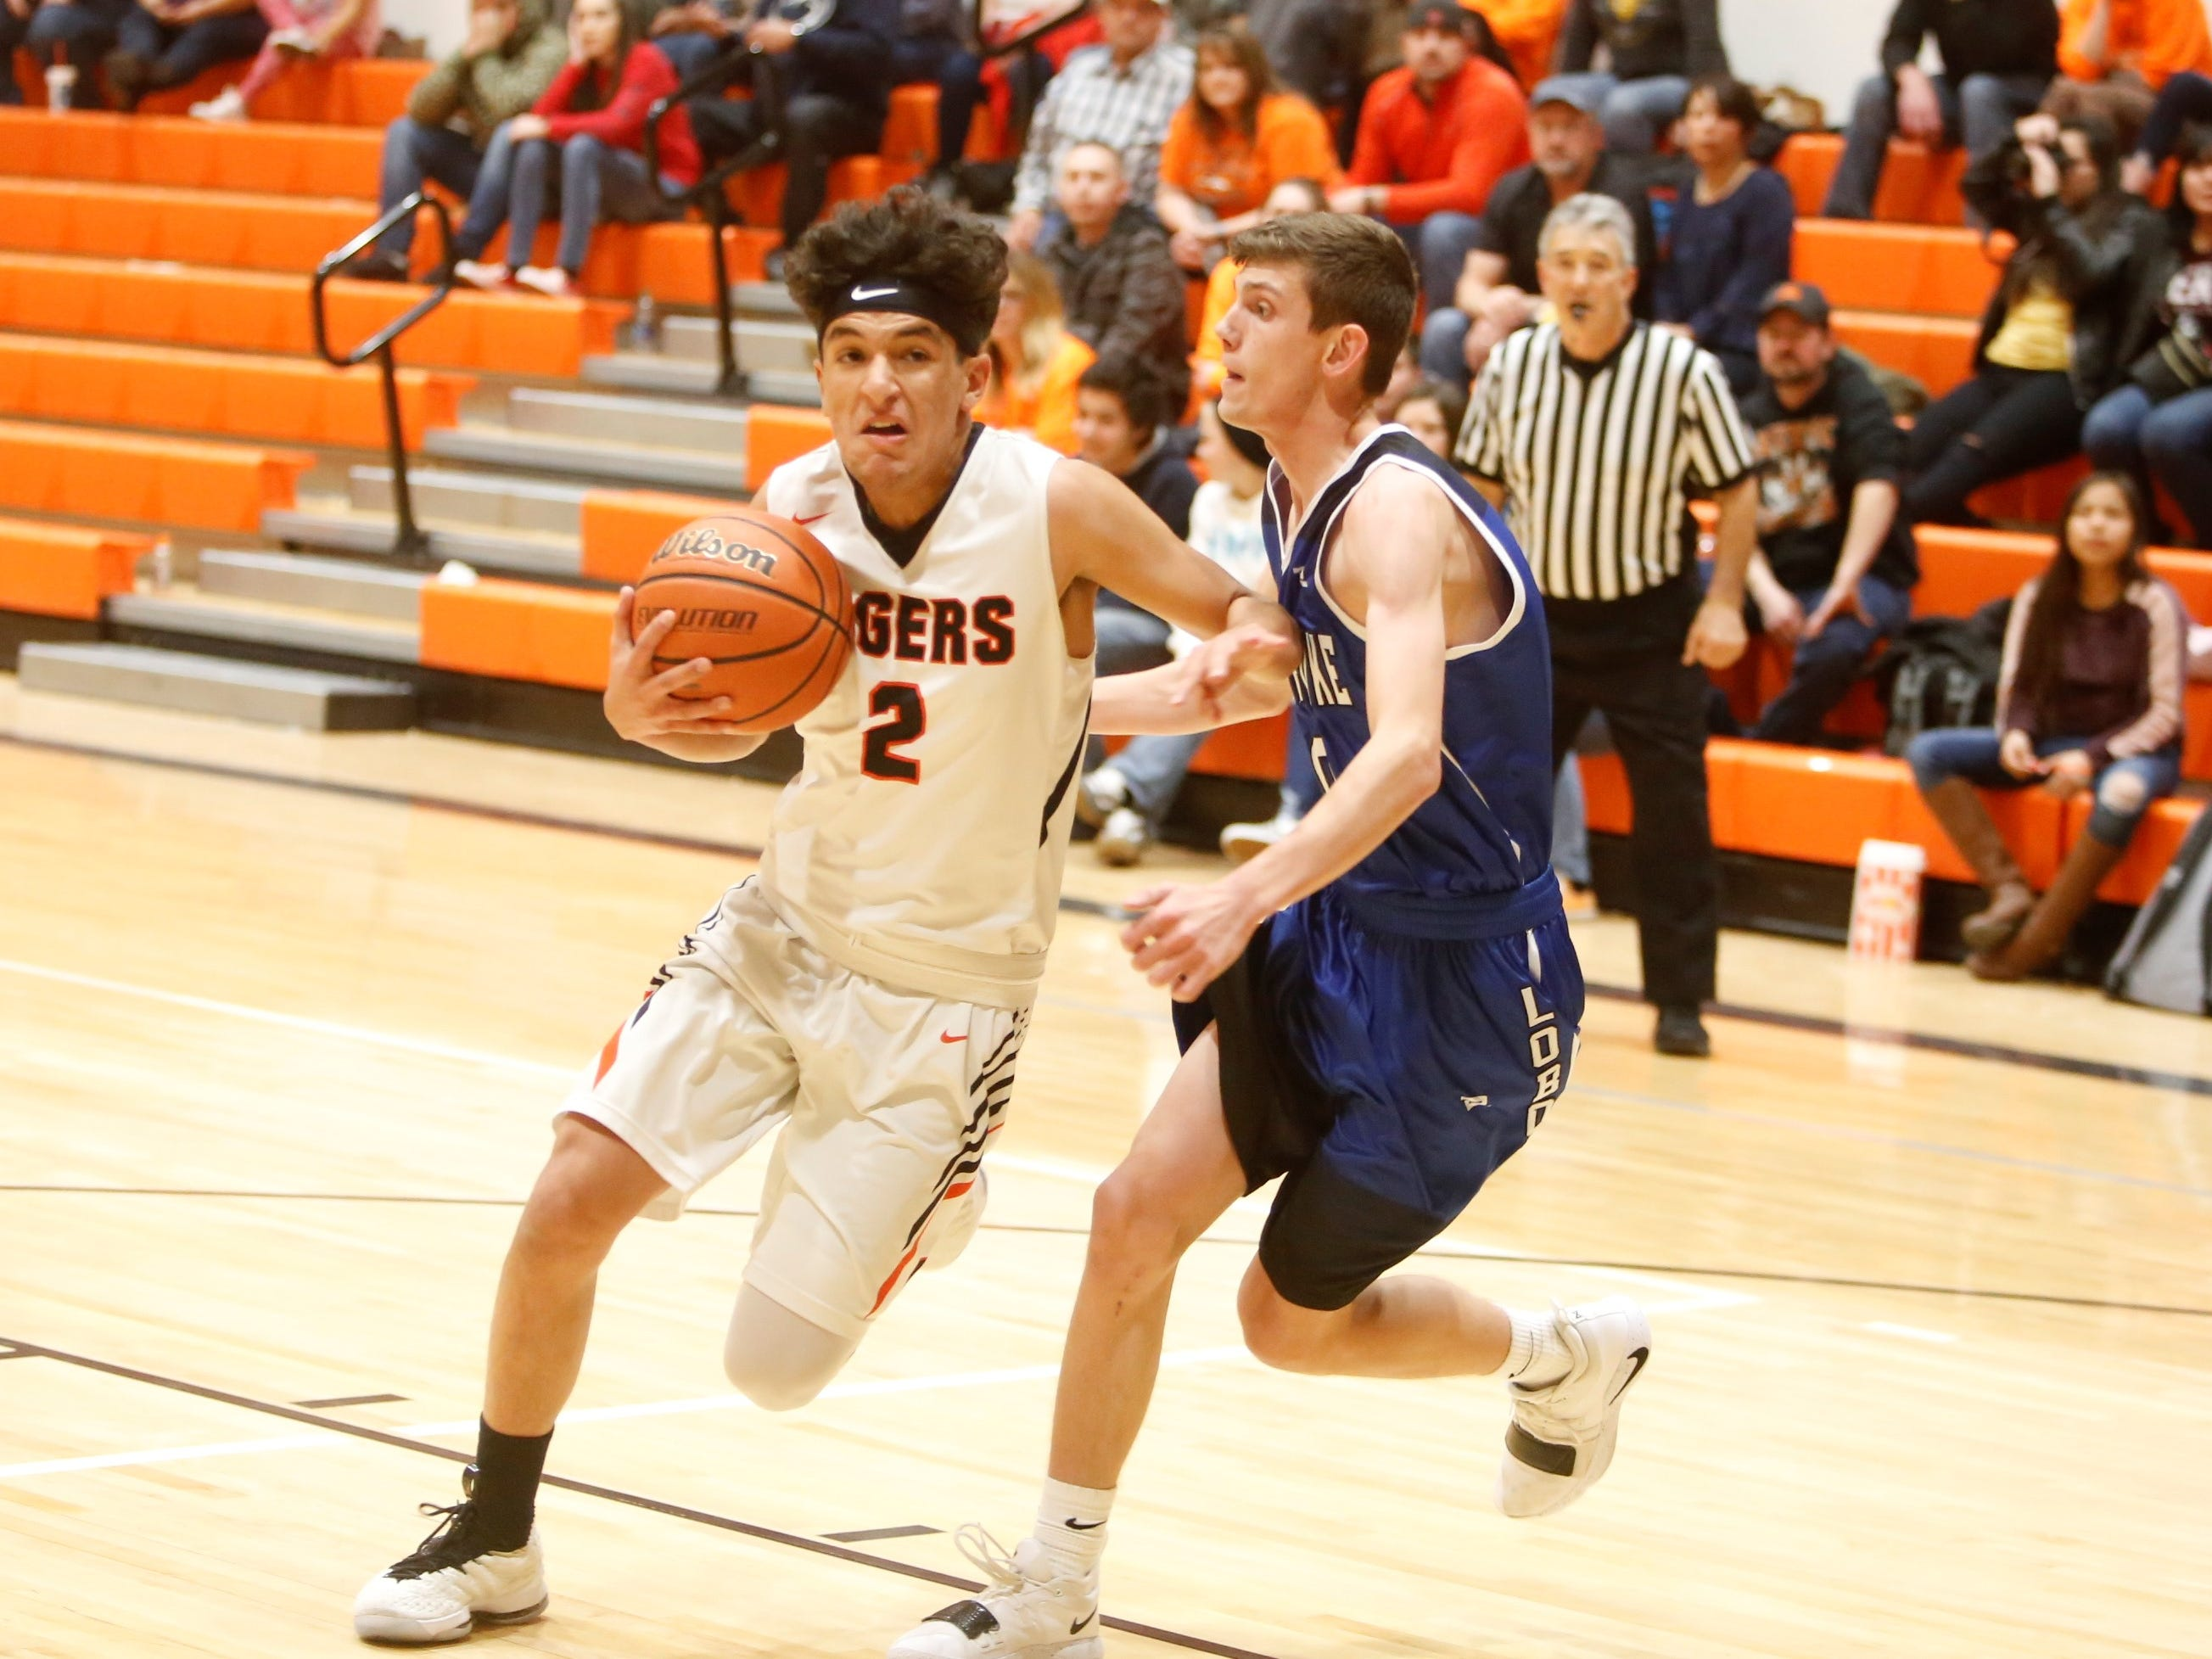 Aztec's Anthony Rios drives to the basket for a layup against Snowflake's Trever Willis during the Rumble in the Jungle tournament third place game Saturday at Lillywhite Gym in Aztec.